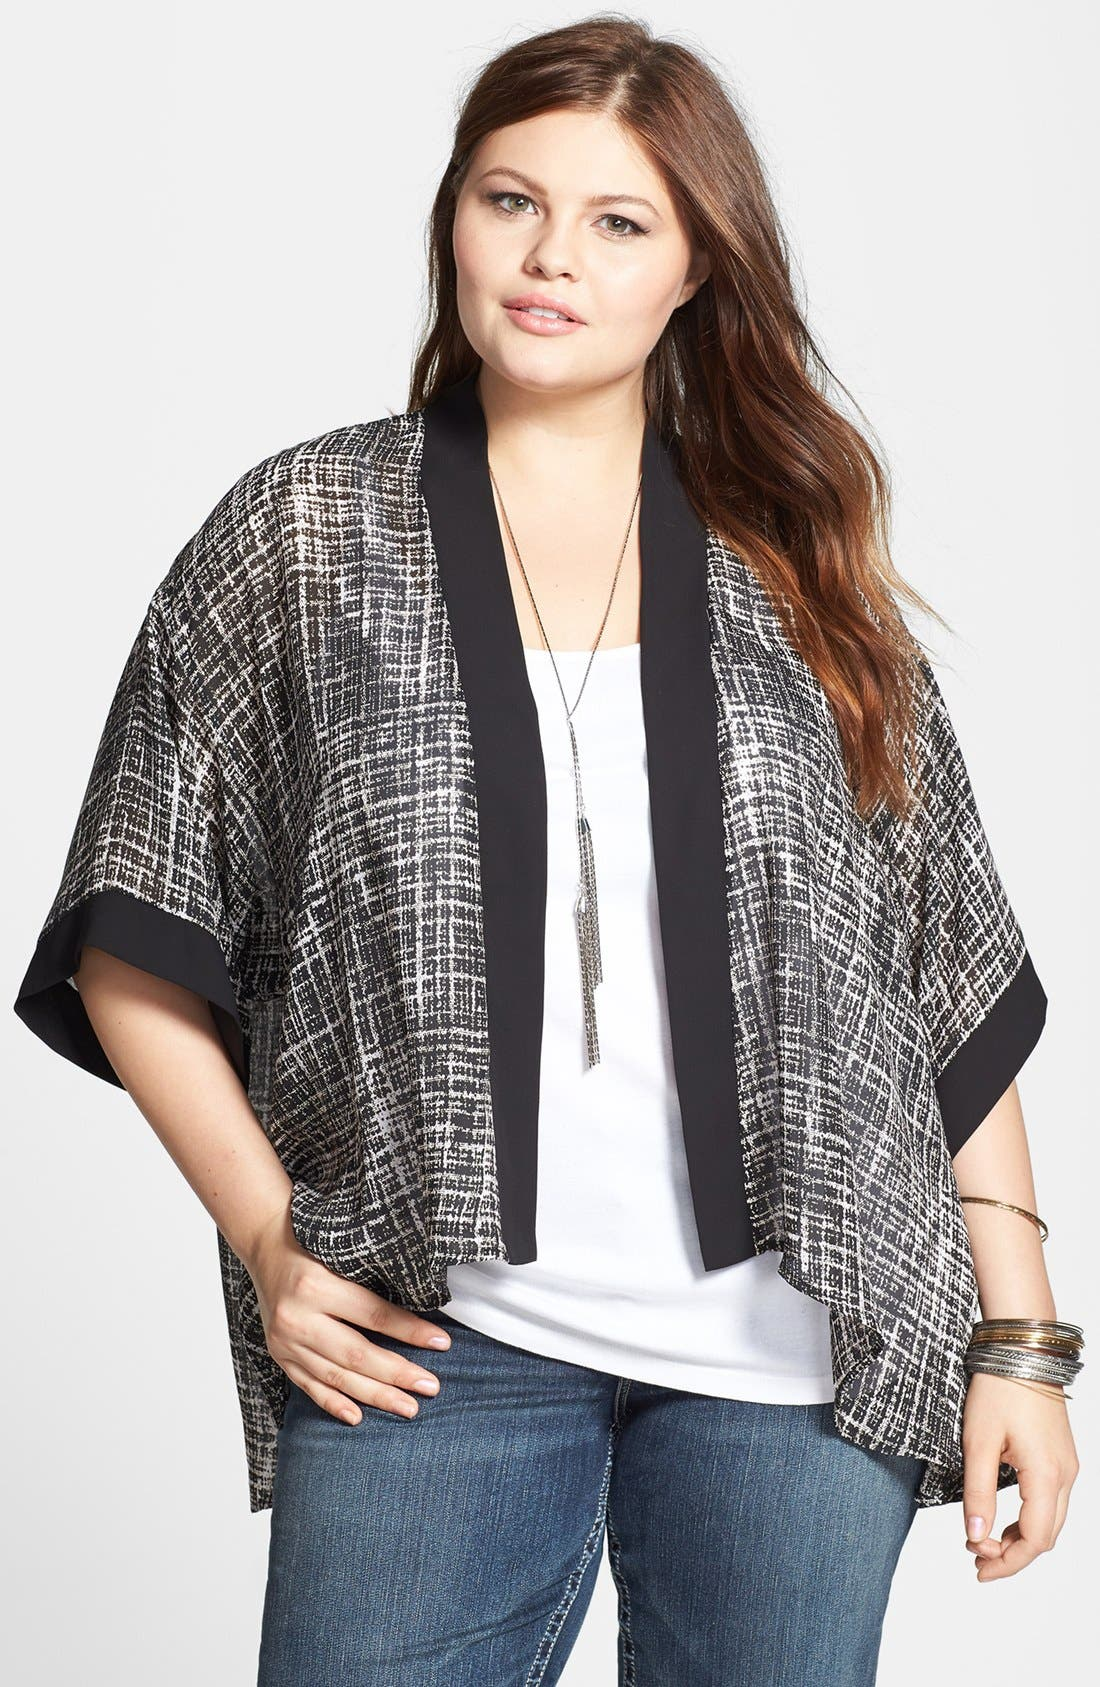 Alternate Image 1 Selected - Soprano Print Woven High/Low Cardigan (Plus Size)